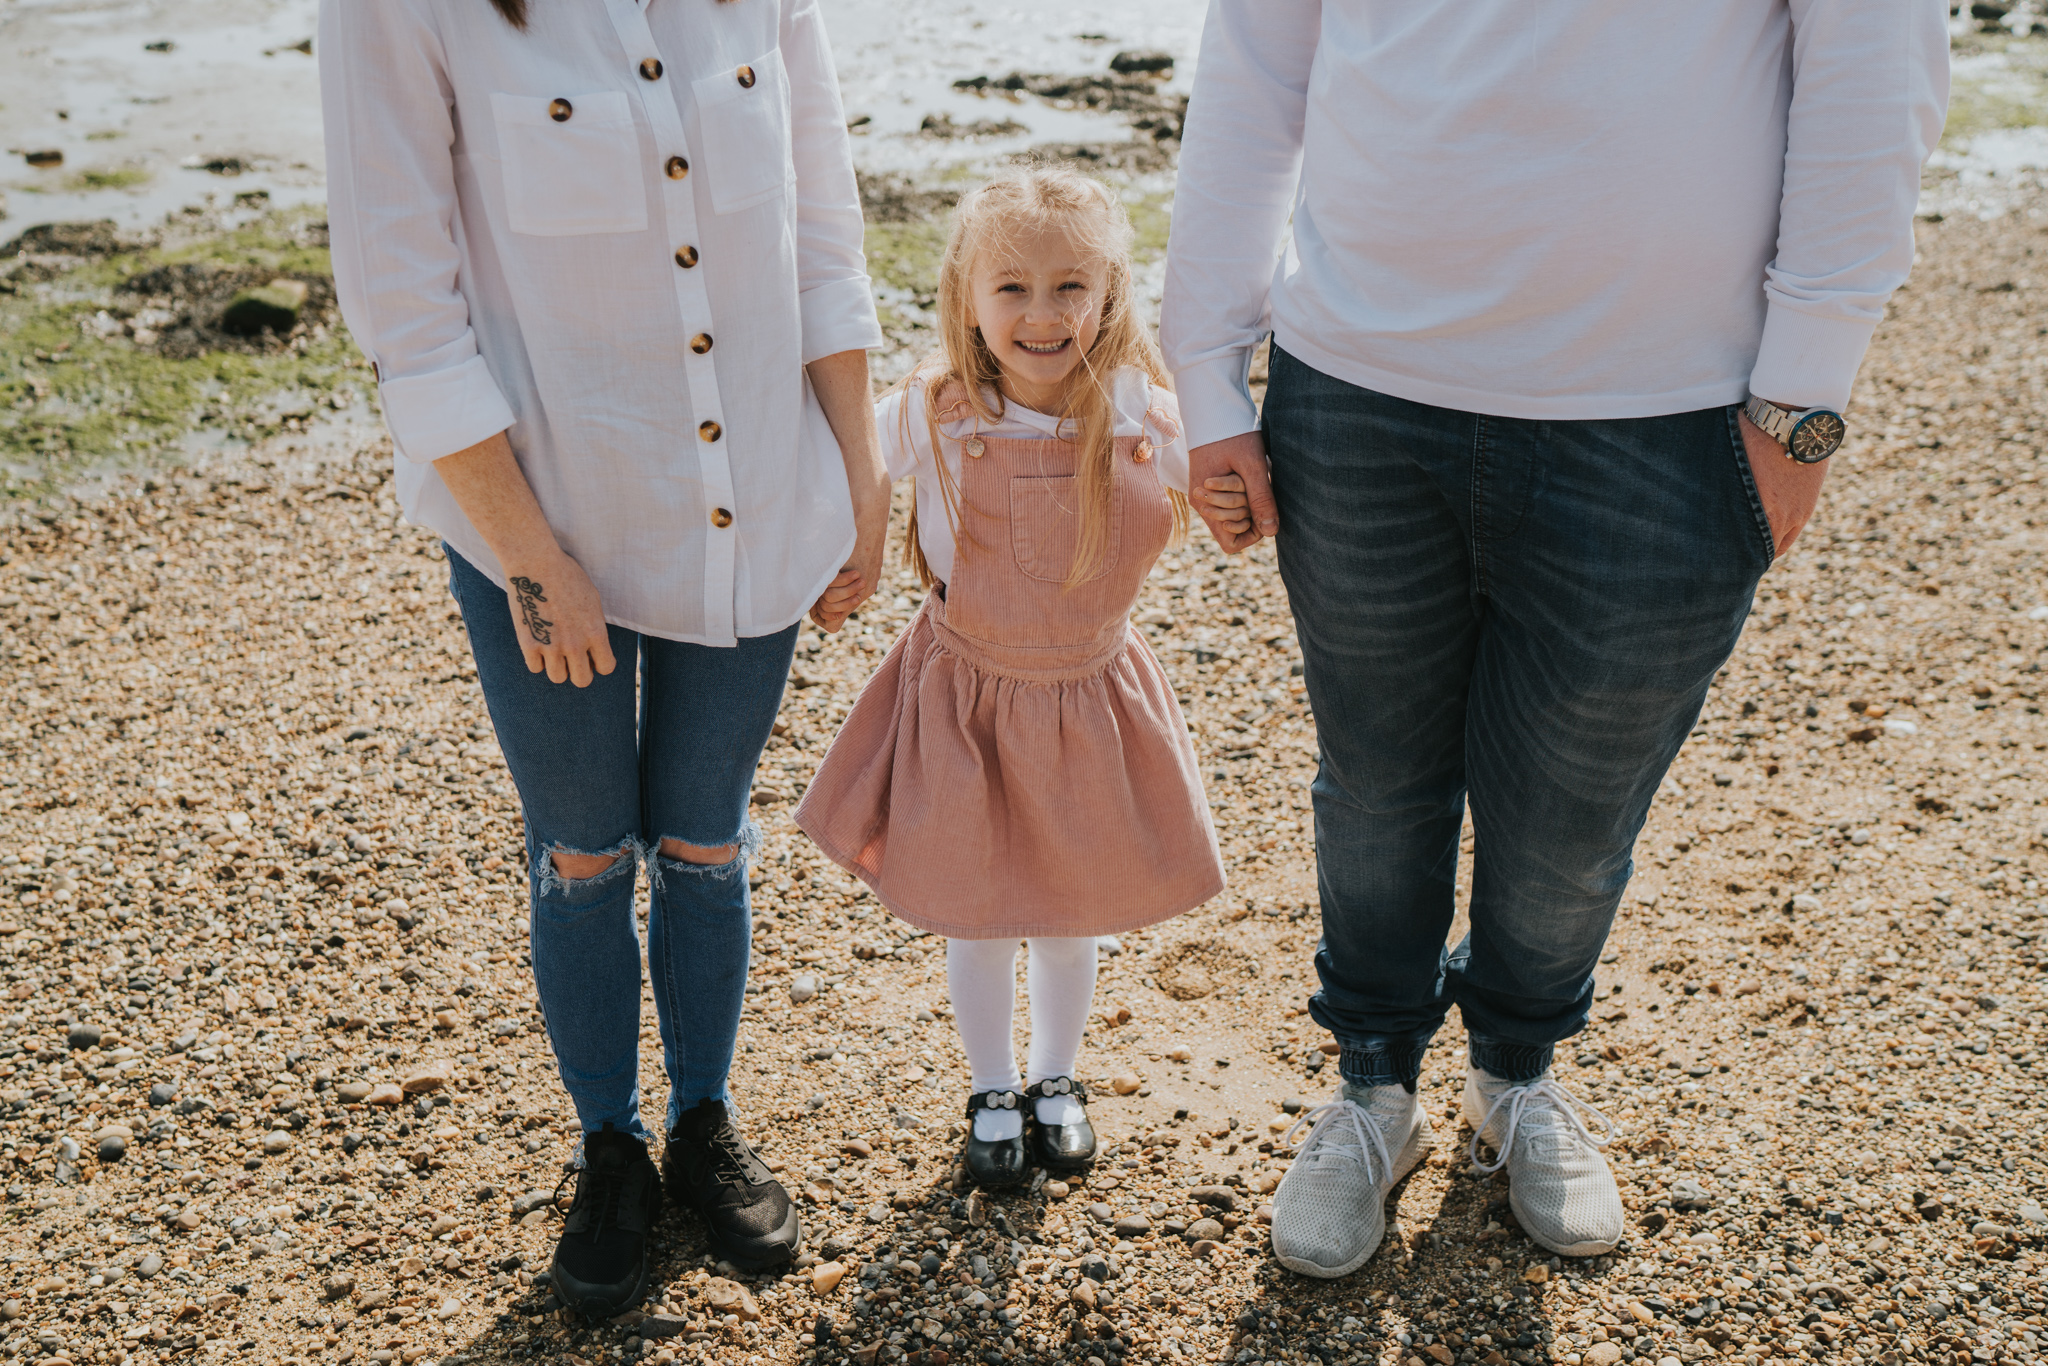 ruse-family-cudmore-grove-beach-family-session-grace-elizabeth-colchester-essex-alternative-wedding-lifestyle-photographer-essex-suffolk-devon-23.jpg